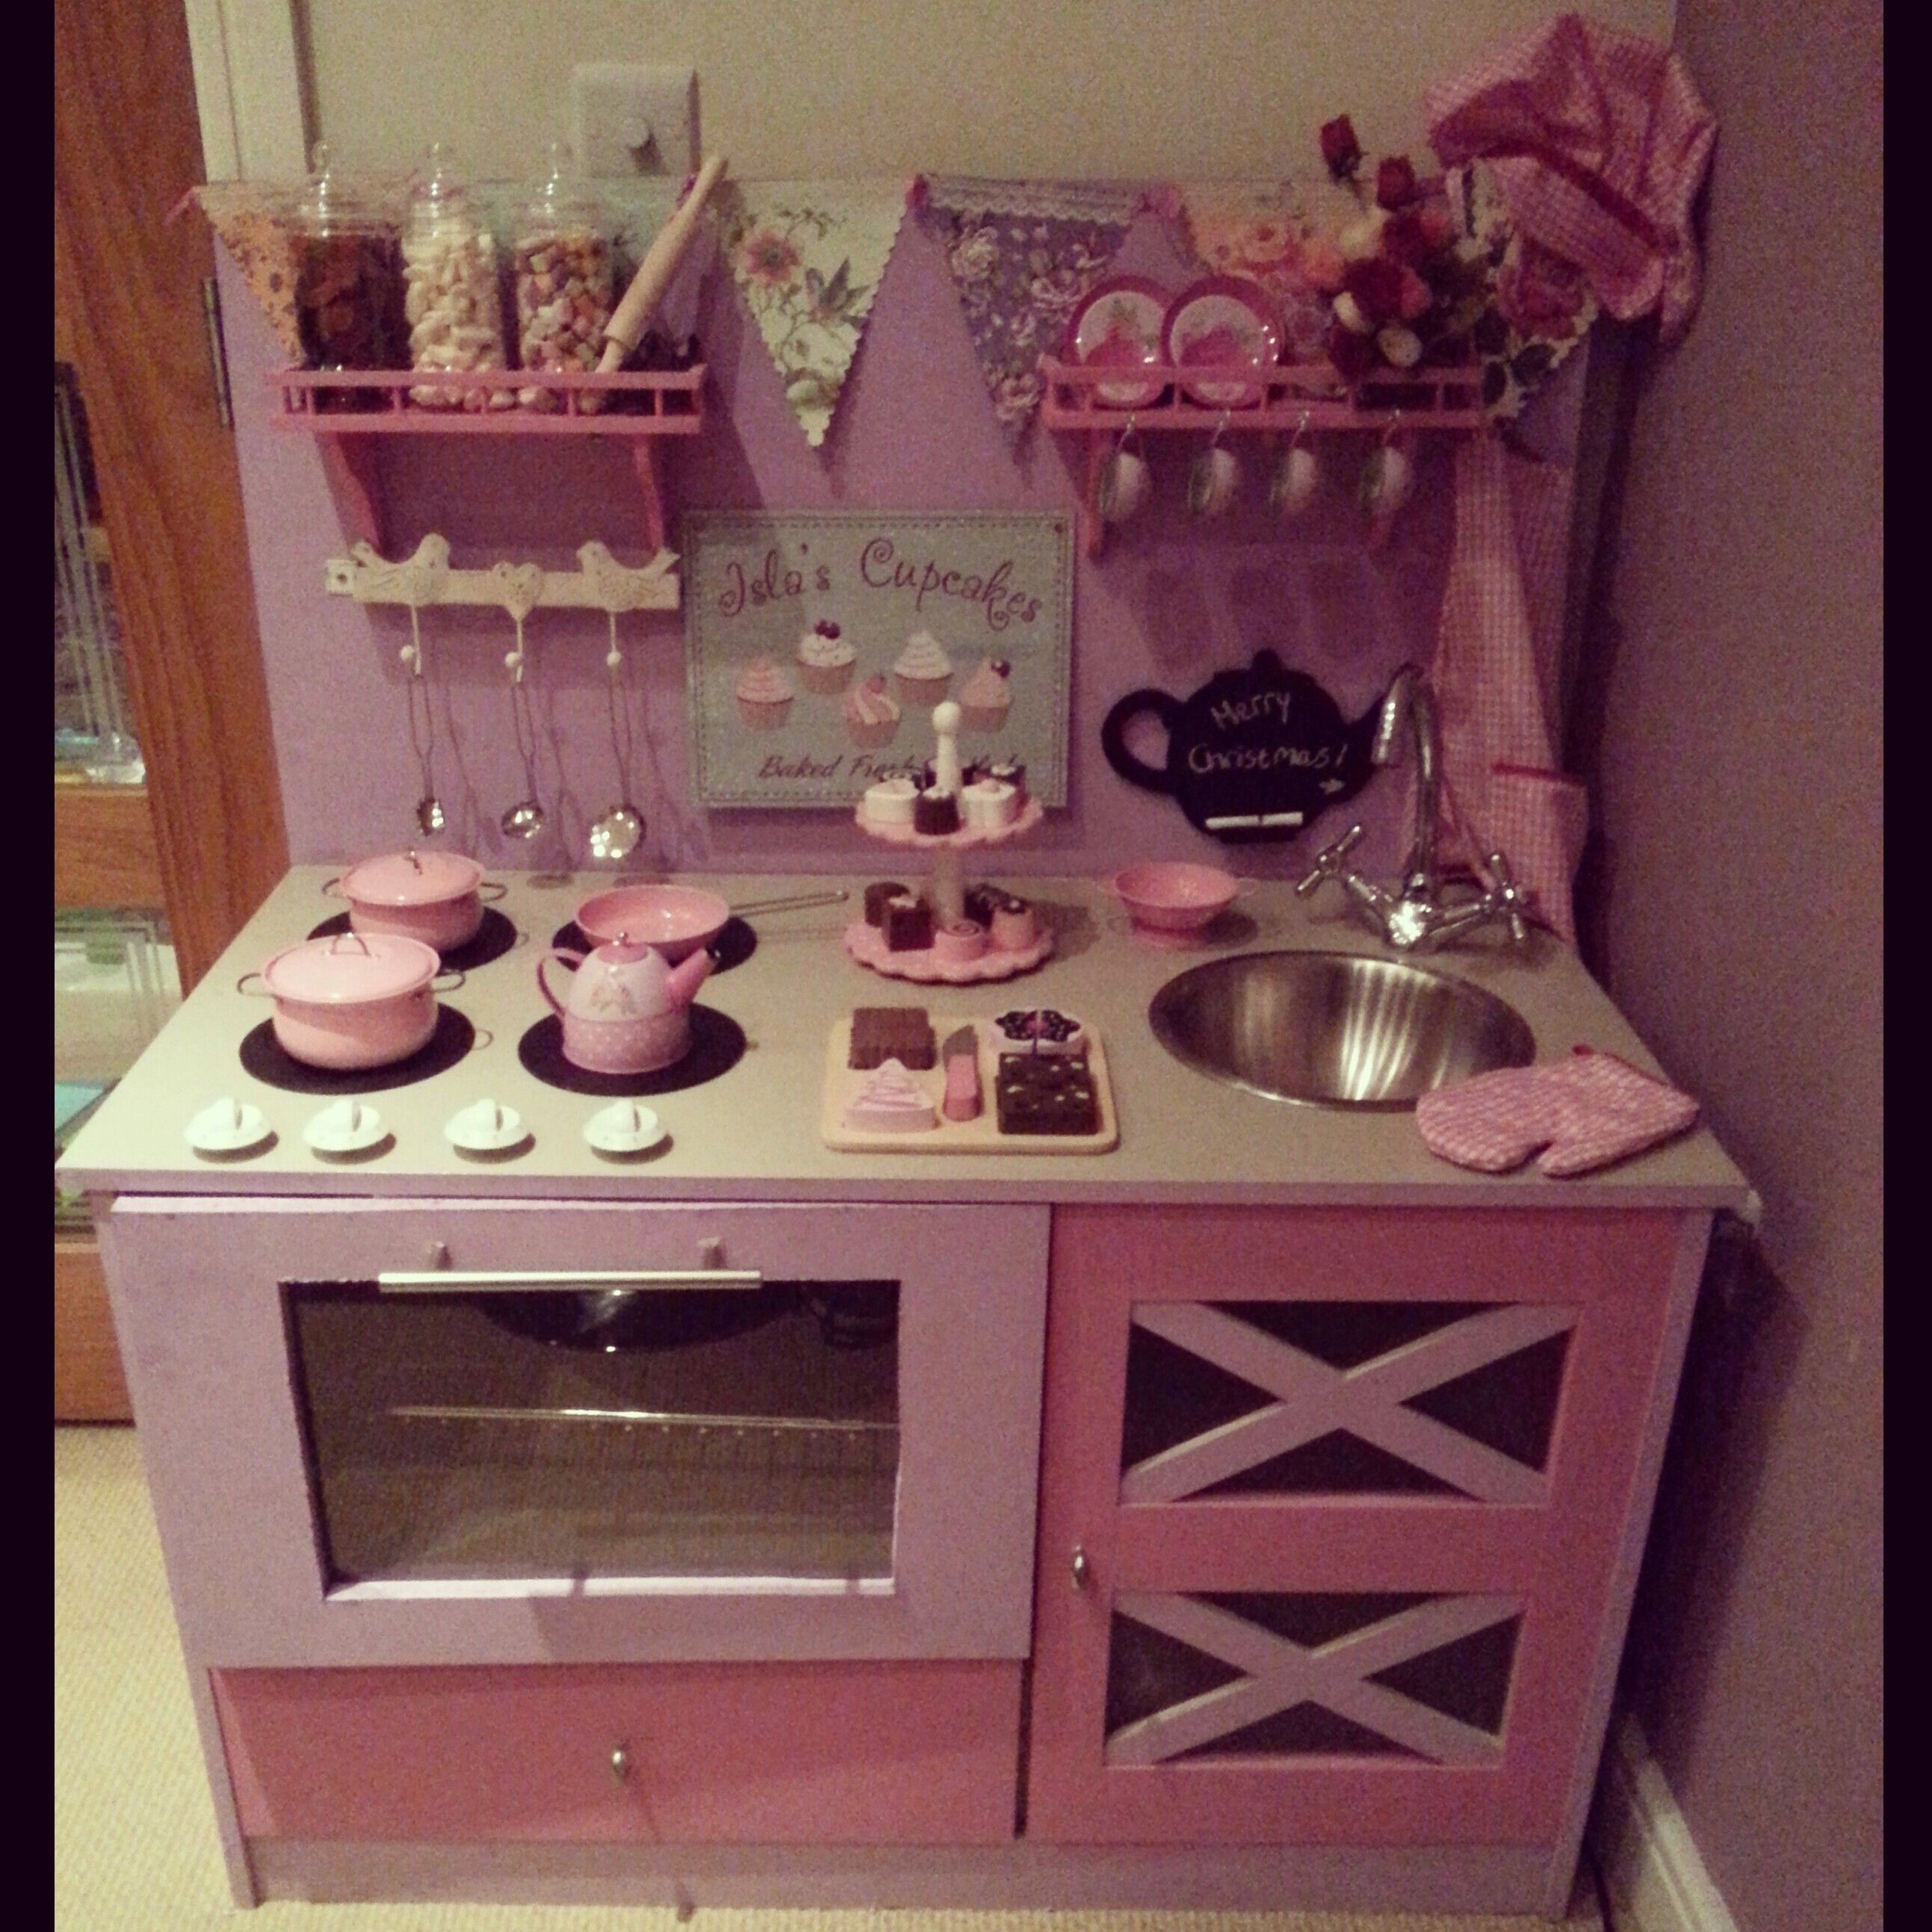 Homemade Play Kitchen Play Kitchen Diy Kitchen Toy Kitchen Girlie Pink Lilac Fun For